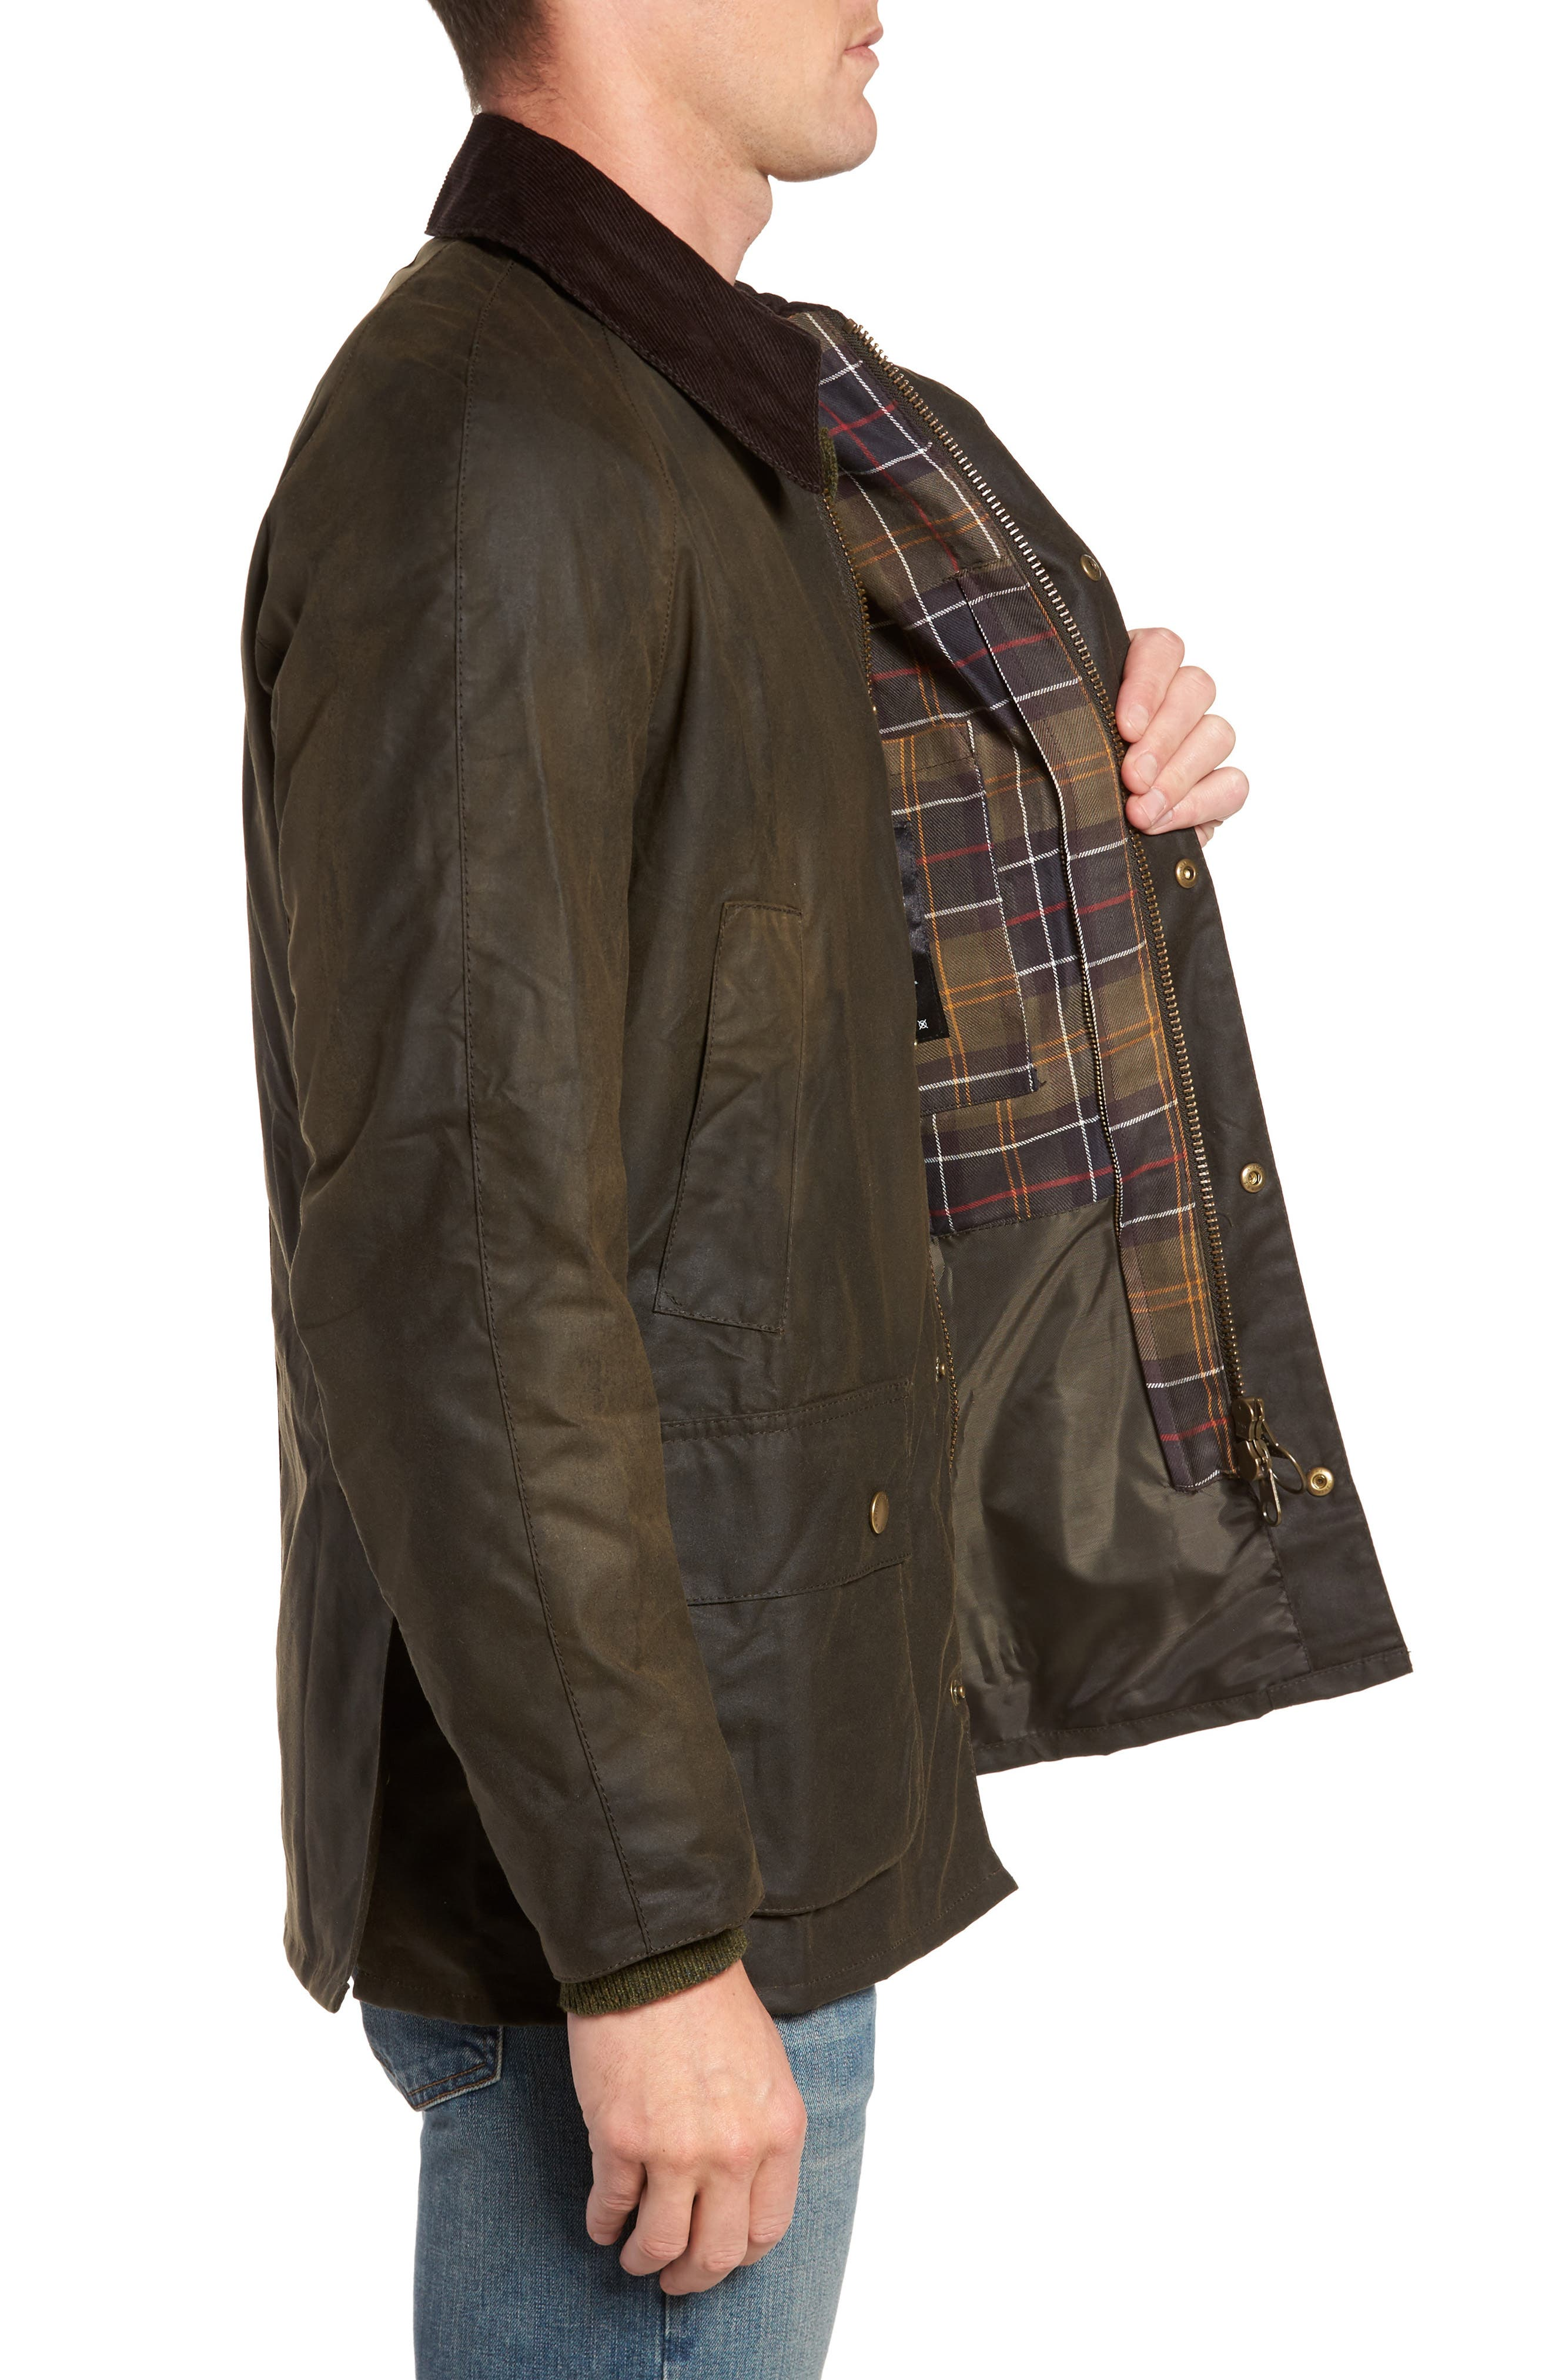 BARBOUR, Ashby Wax Jacket, Alternate thumbnail 4, color, OLIVE